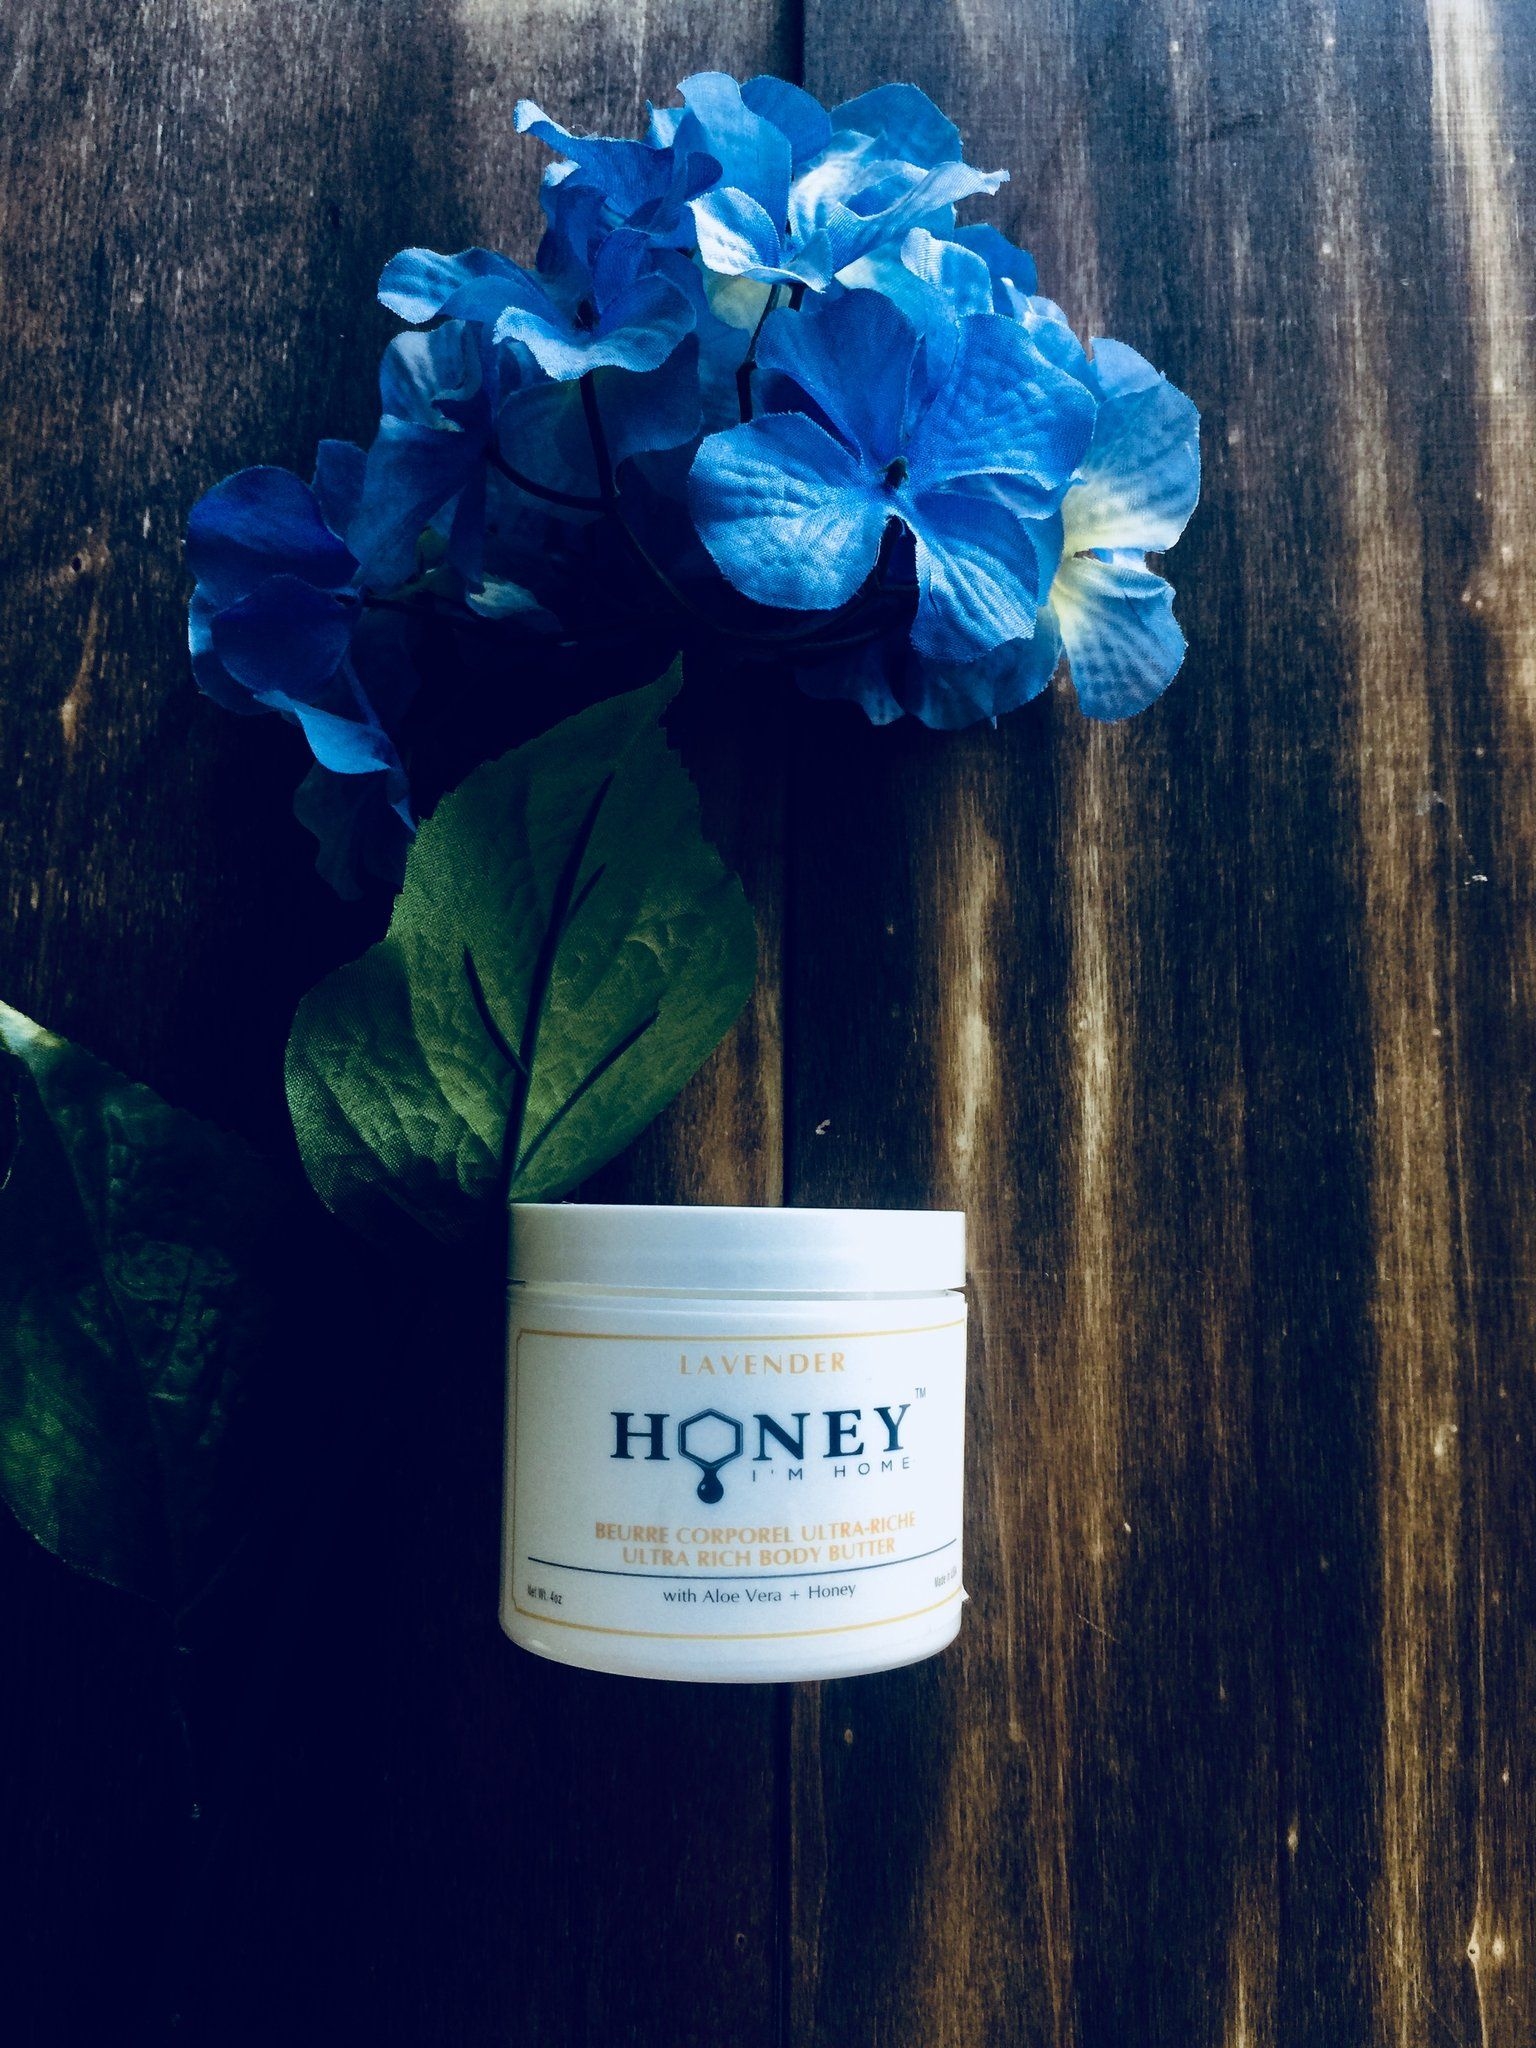 May I Butter you up?  20% off (WelcomeHoney) minimum $ 15 purchase  +  FREE Shipping over $ 50.00 at honeyimhomebath.com  #honeyimhomebath #natural #handmade Butter Me Up with LAVENDER – Honey I'm Home Bath & Body